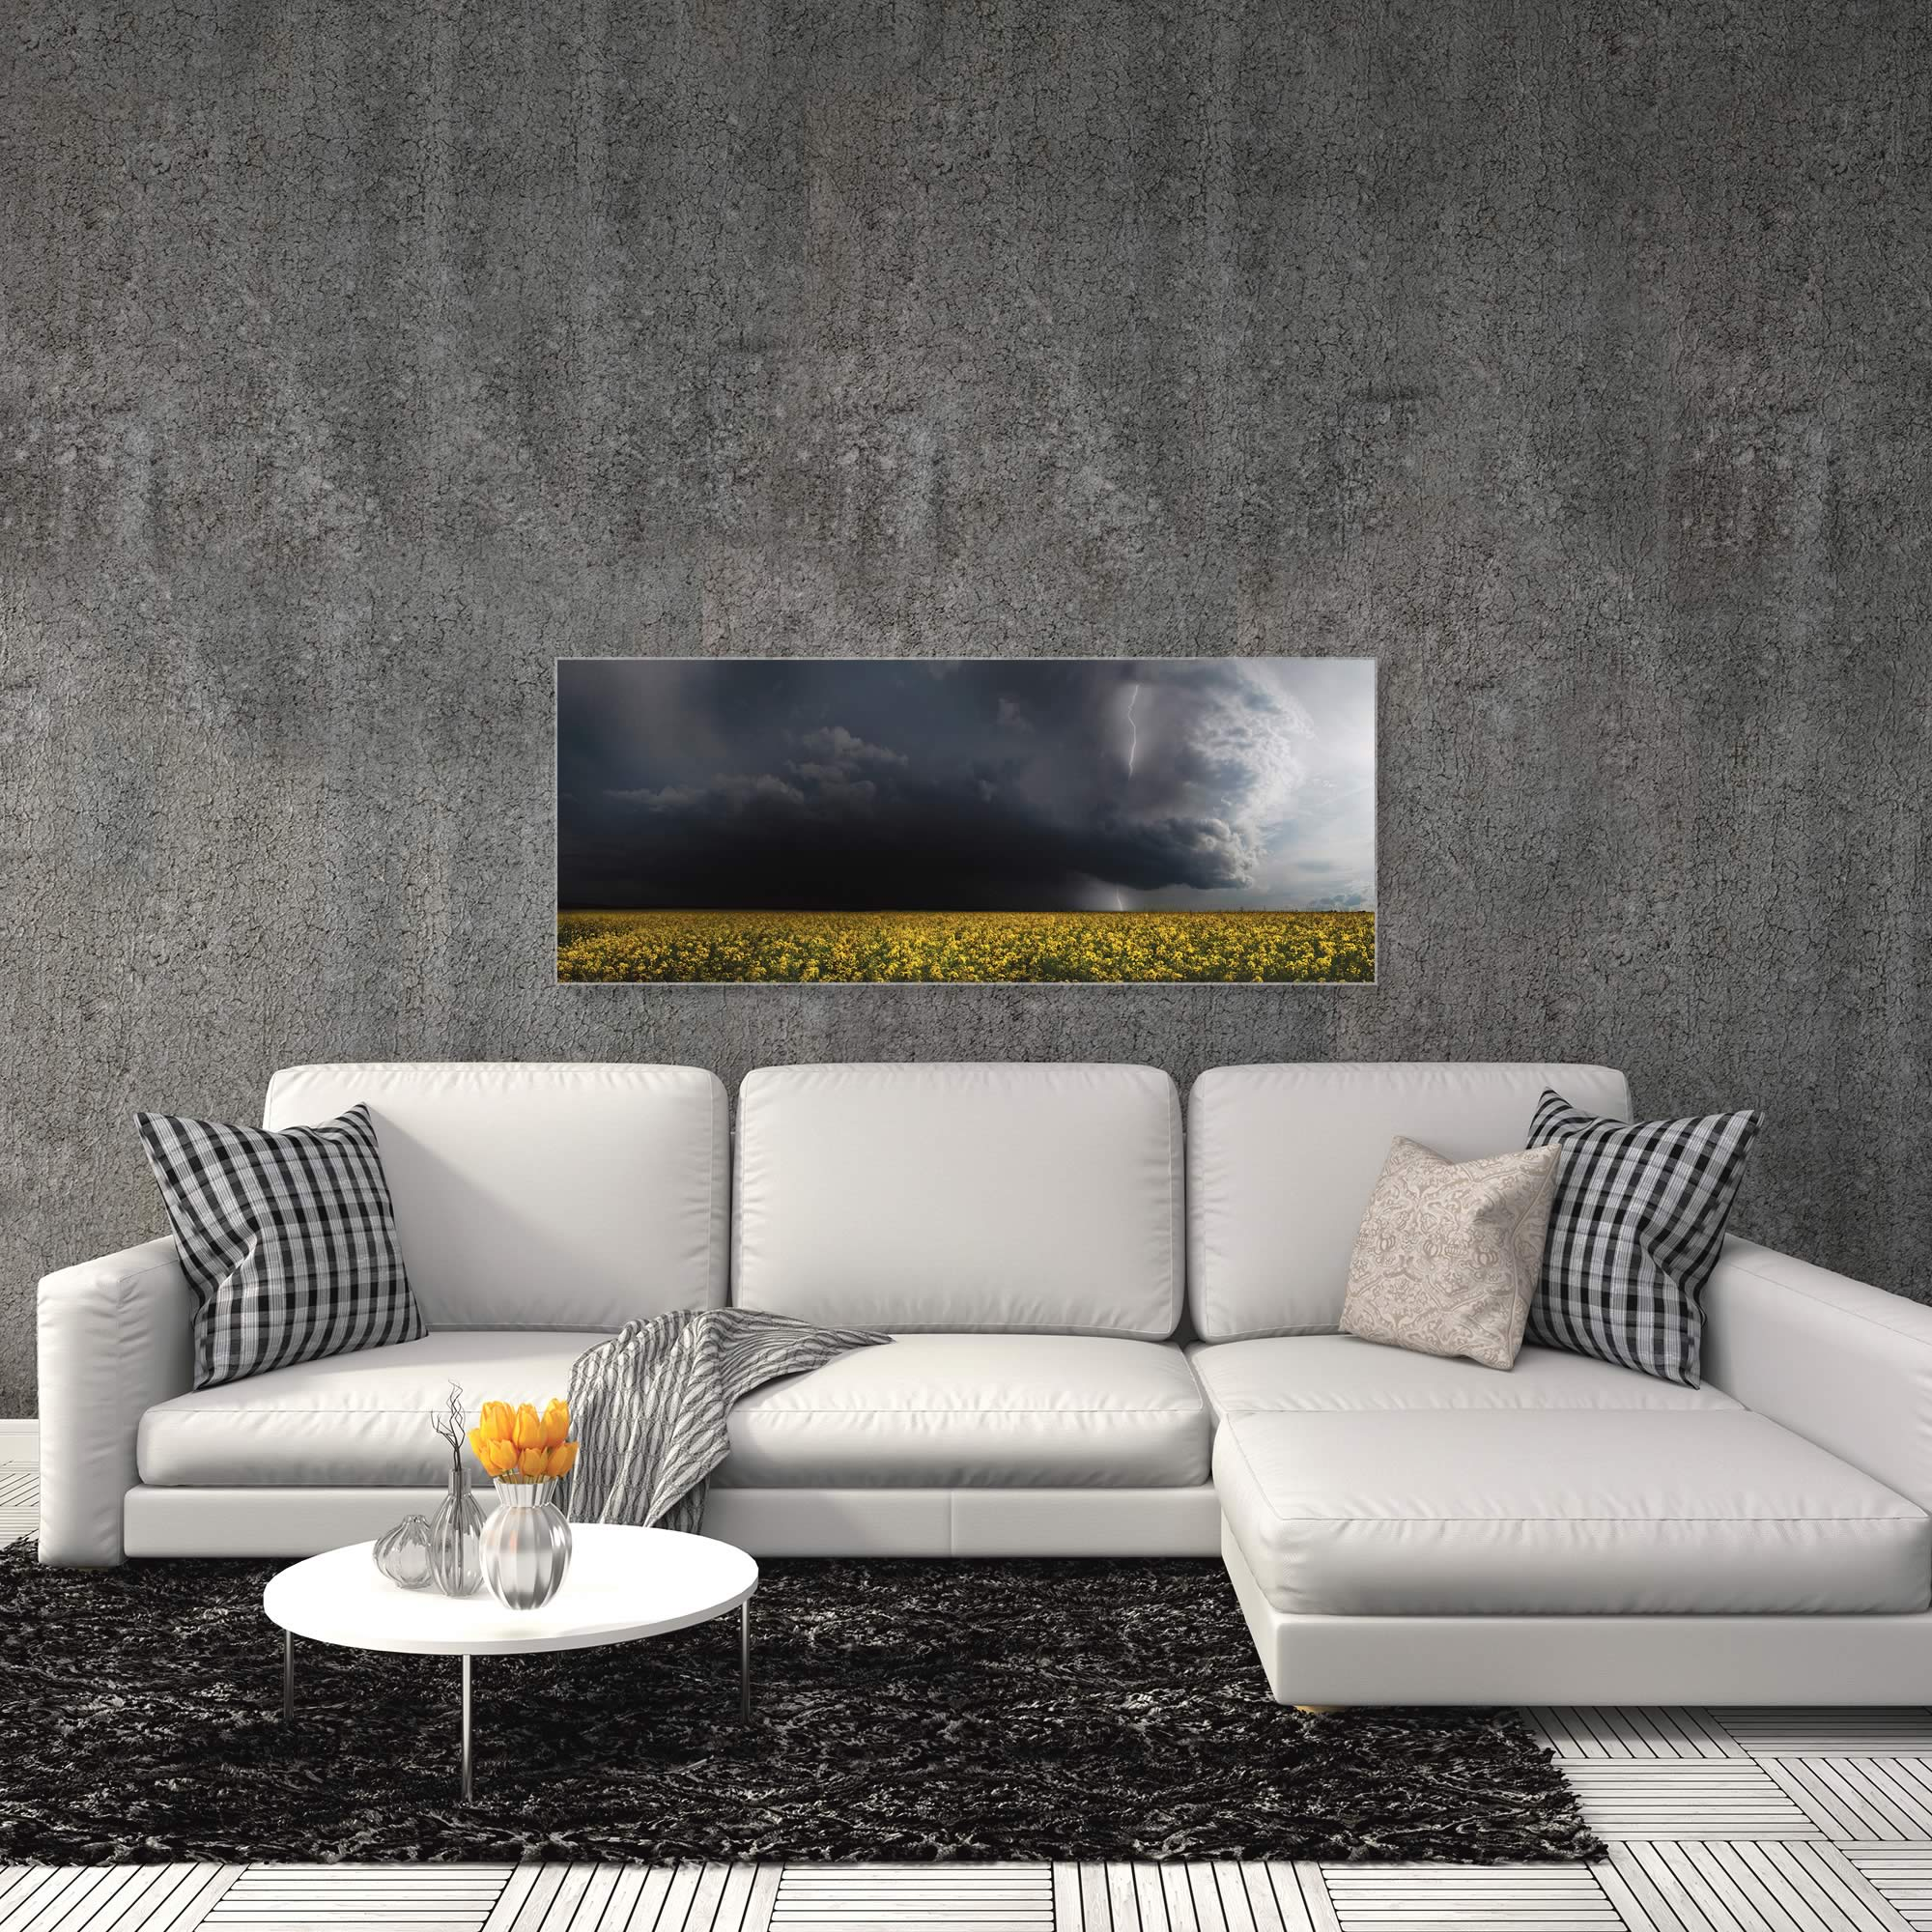 Storm Front by Franz Schumacher - Landscape Photography on Metal or Acrylic - Alternate View 3